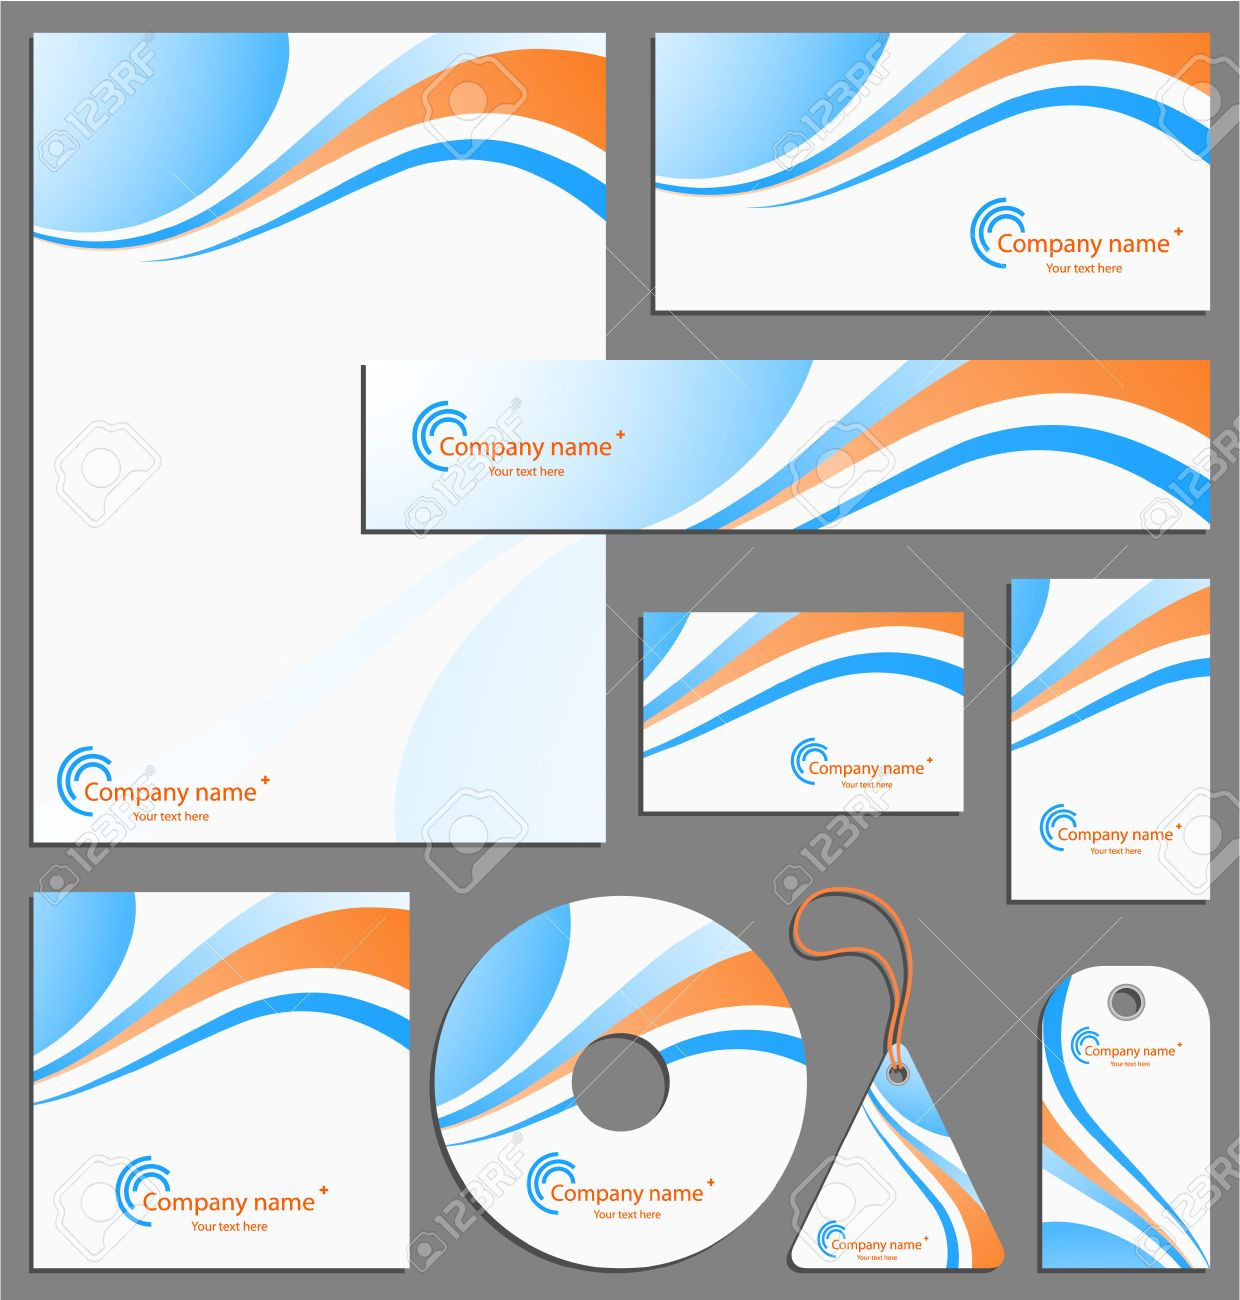 Letterhead template design royalty free cliparts vectors and stock letterhead template design stock vector 5720003 spiritdancerdesigns Image collections